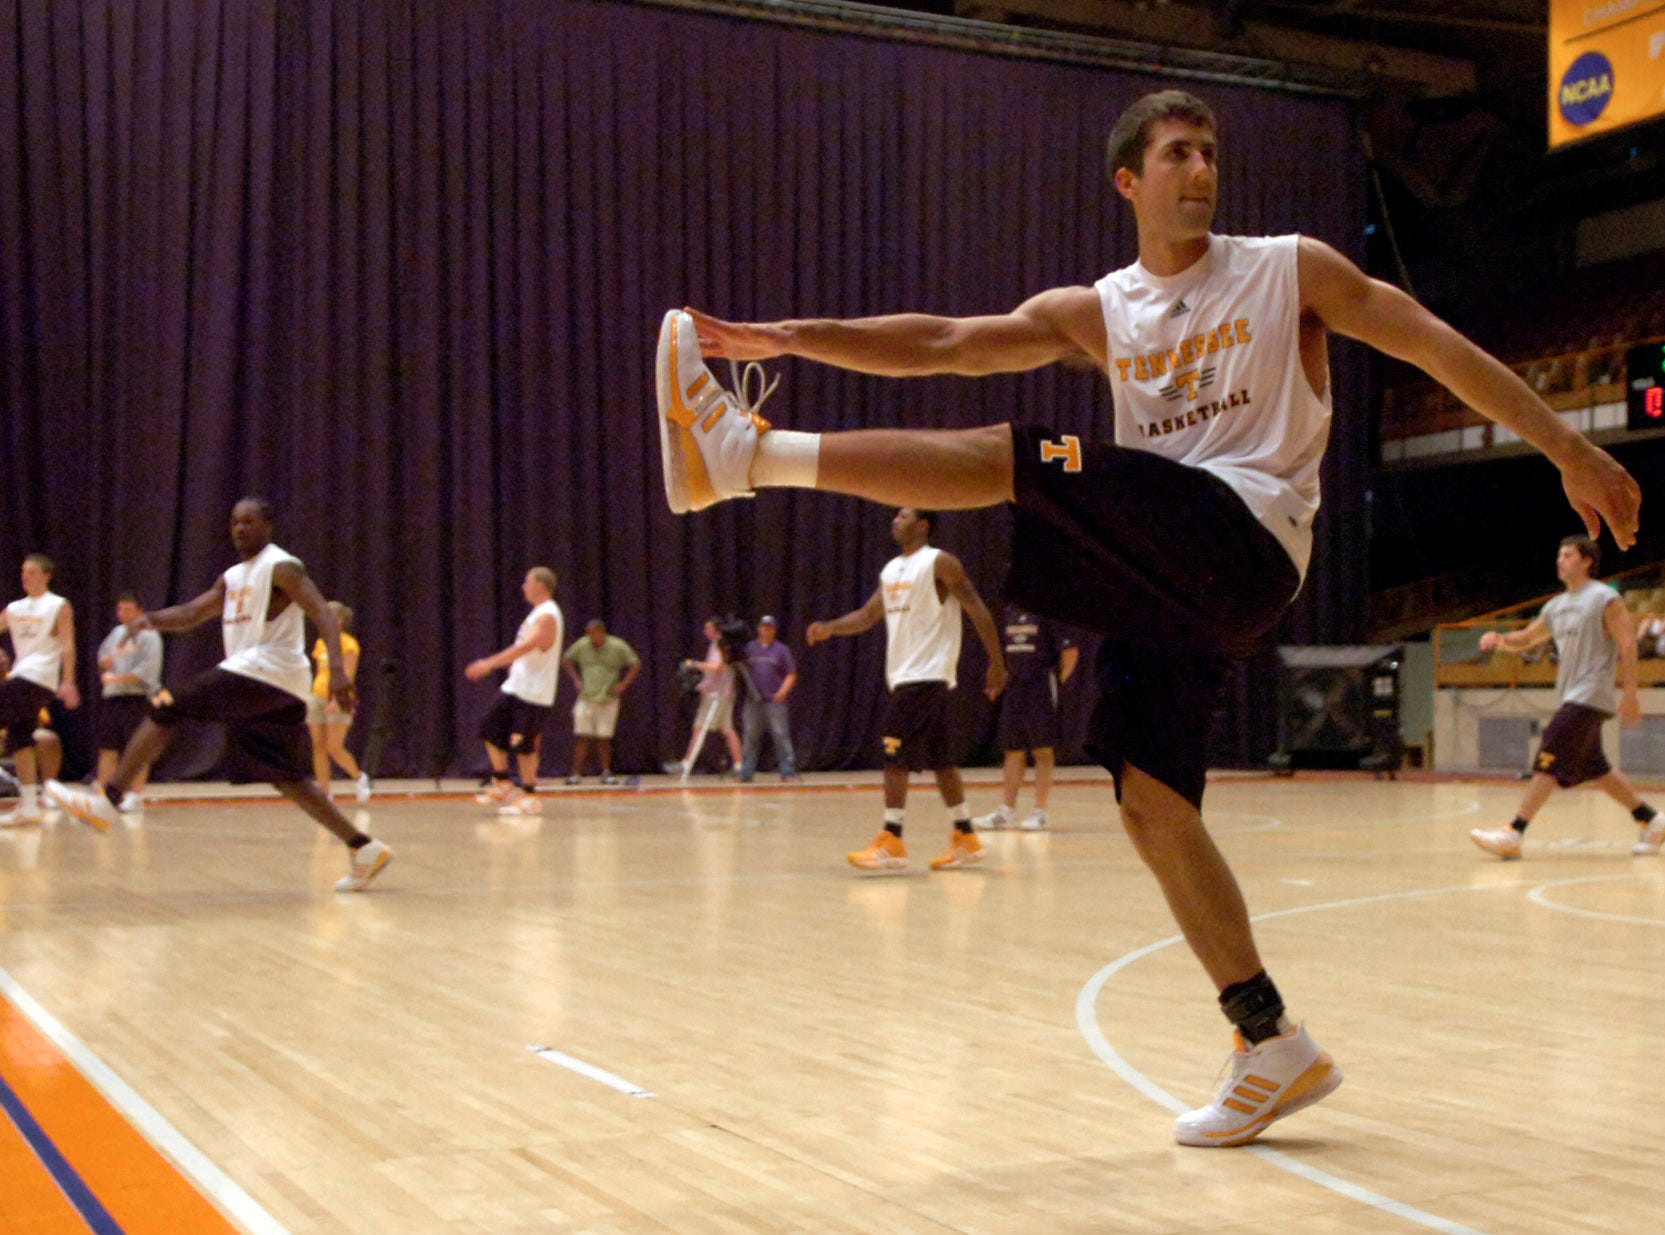 Tennessee basketball player Ryan Childress participates in stretching excercises during practice on Aug. 1, 2007, at Stokely Athletic Center.